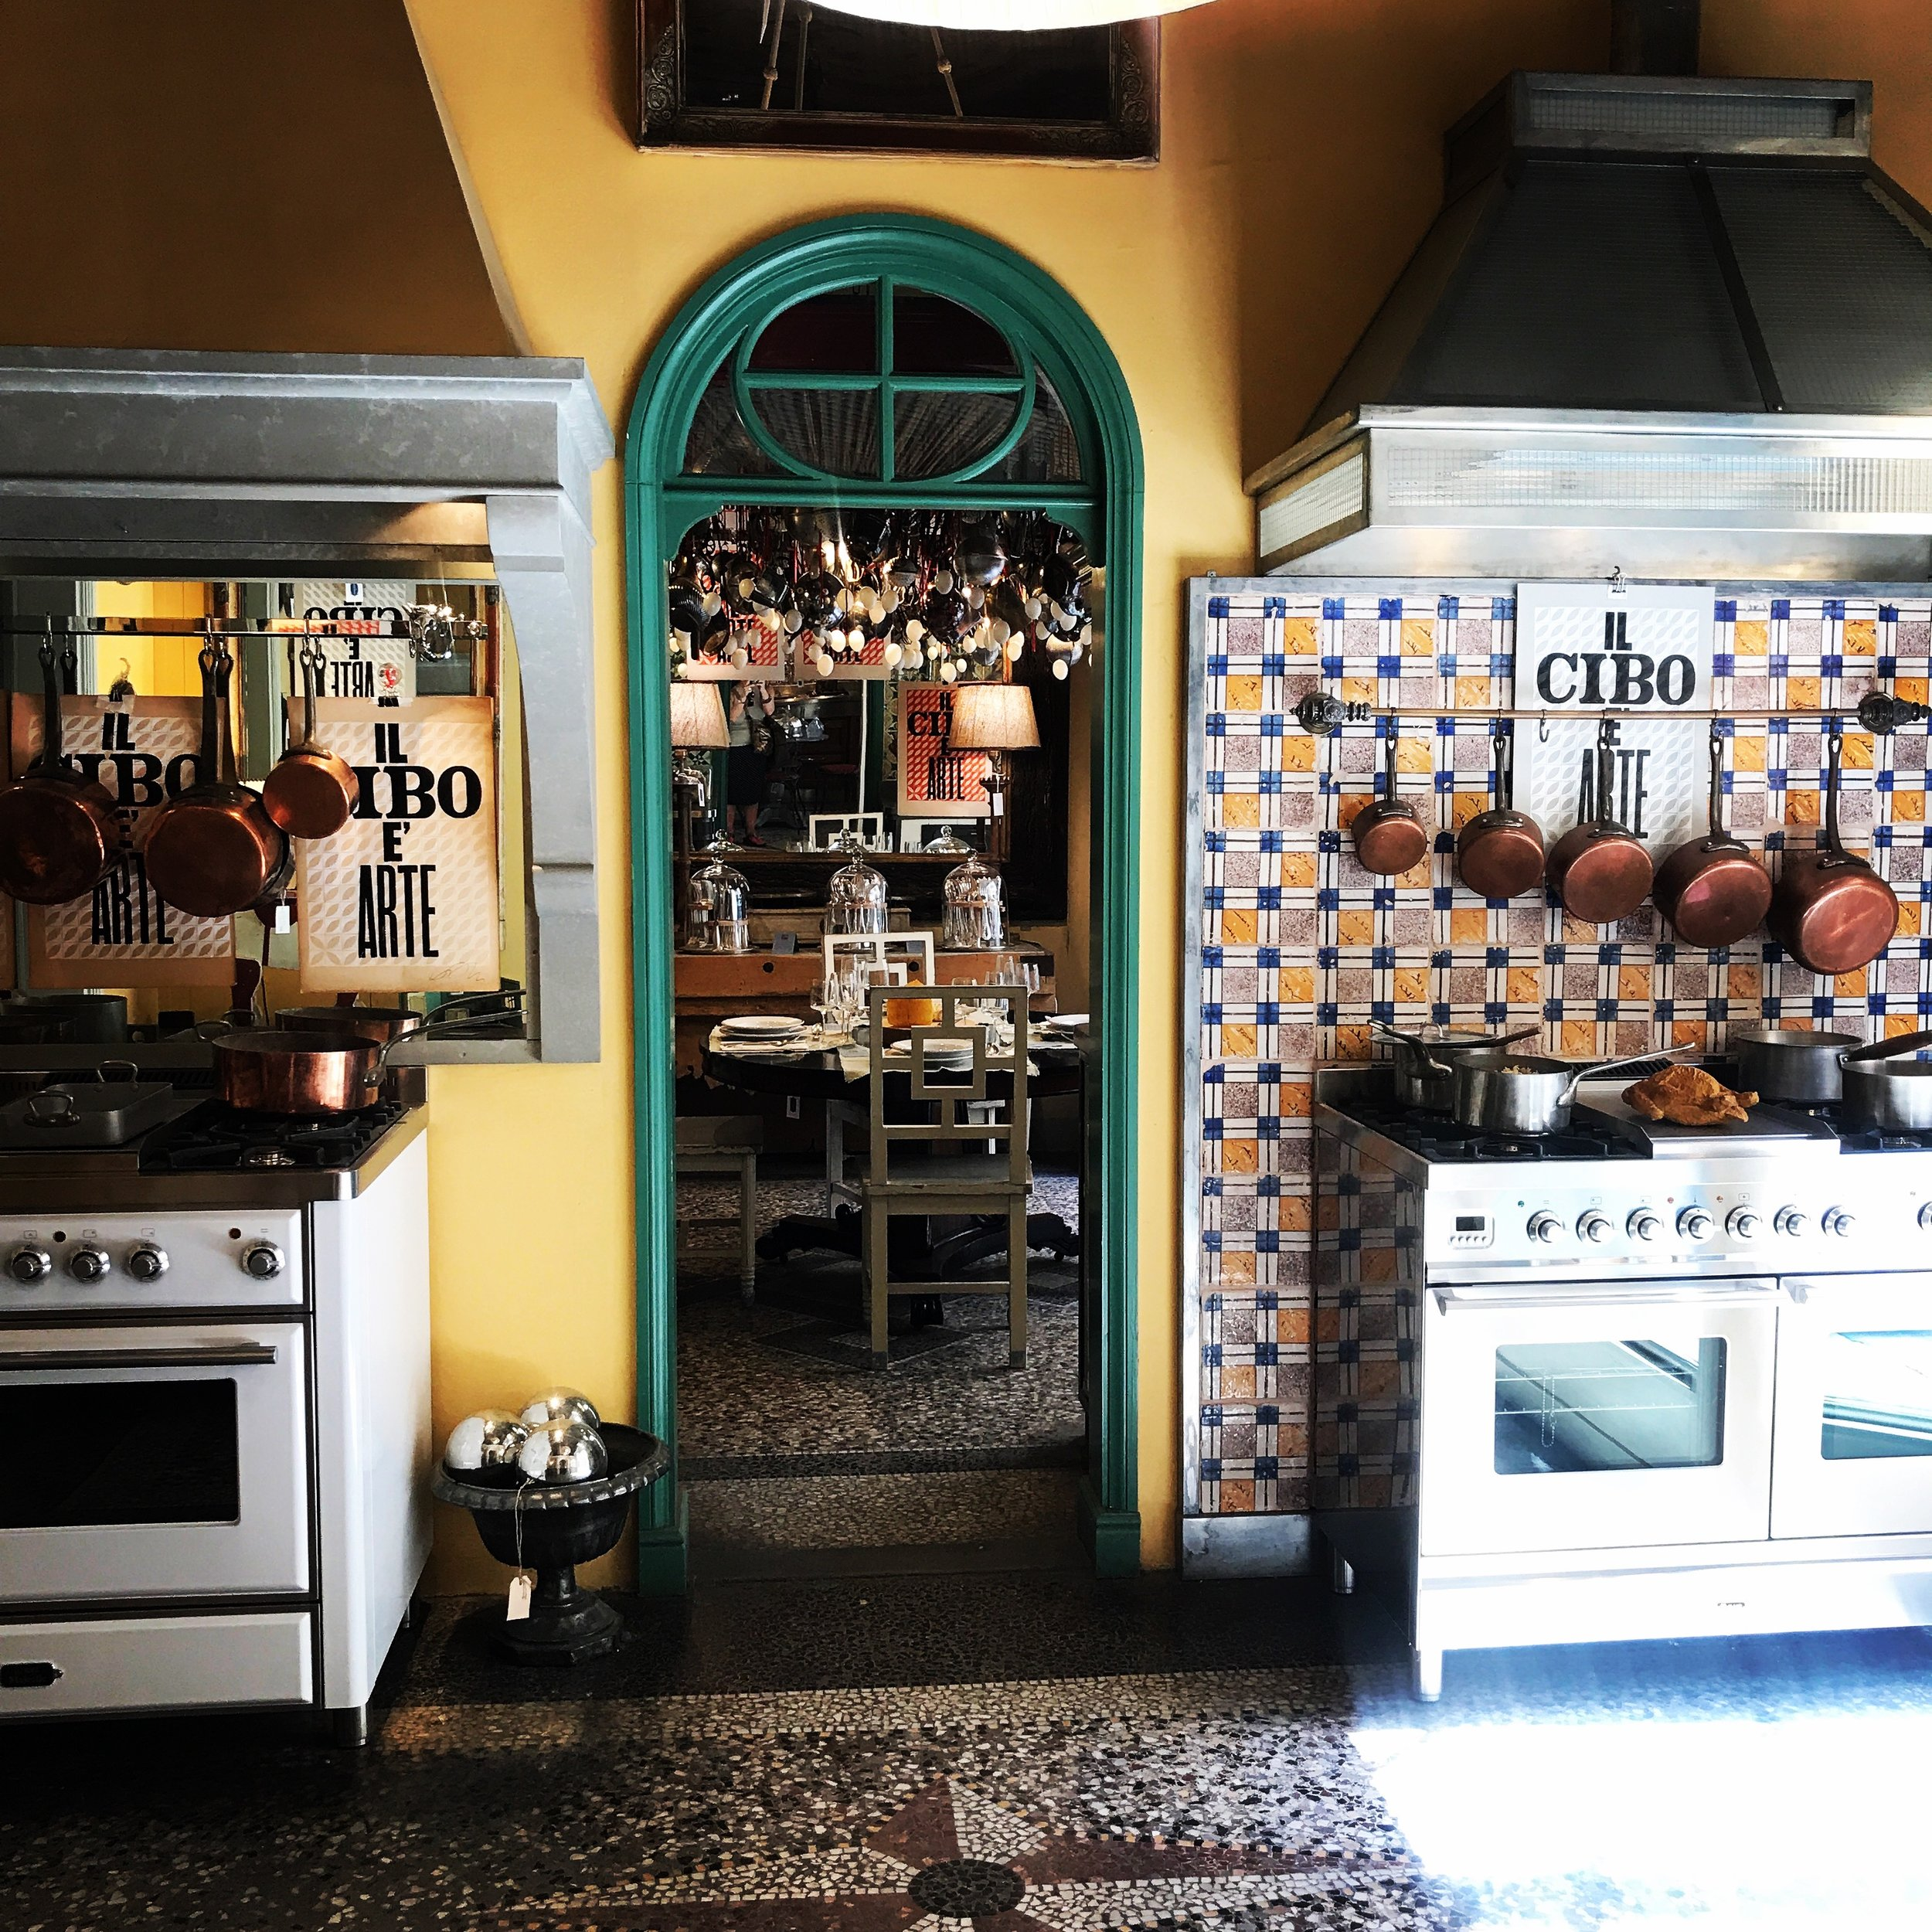 This home store is so amazing I could live there! Kitchen and bath cabinets and fixtures, tile, fabric, cooking lessons in the fully-equipped kitchen - everything!  Riccardo Barthel  on via Romana.